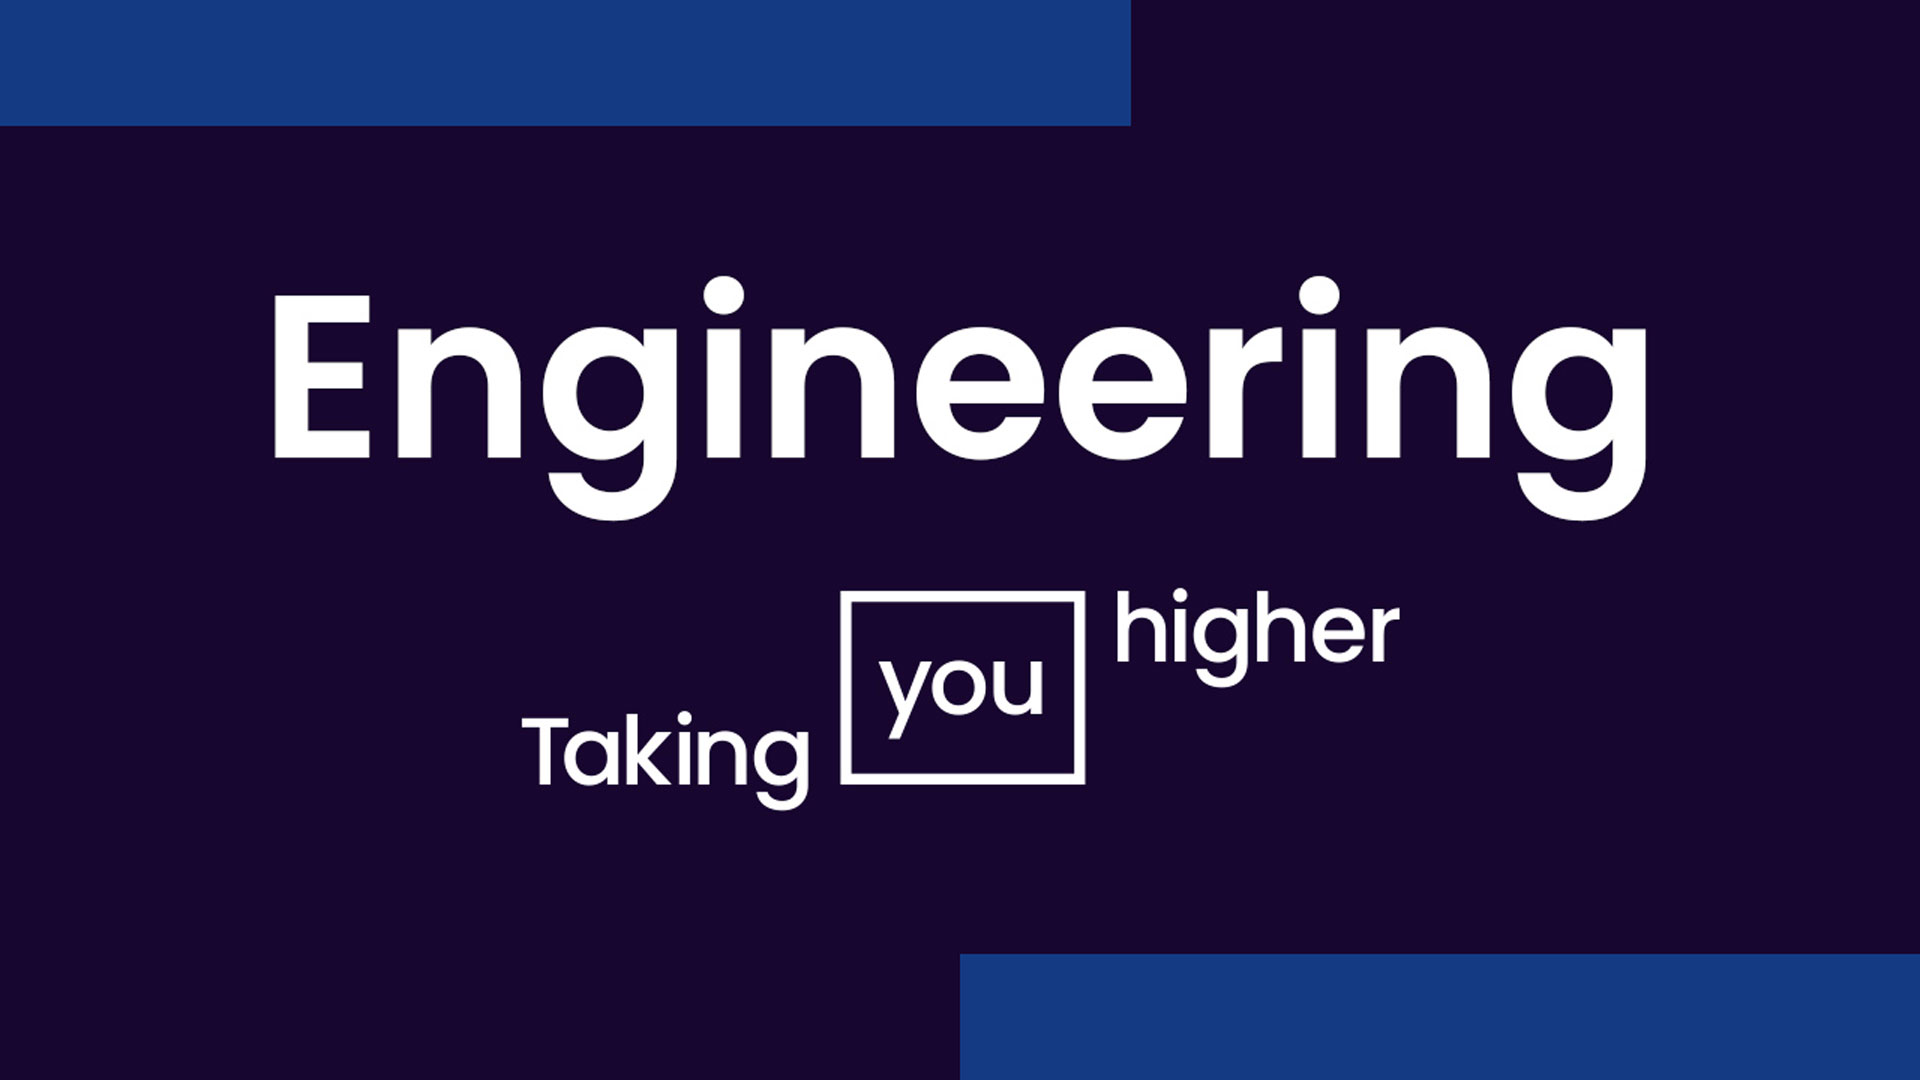 Middlesbrough College Engineering Courses